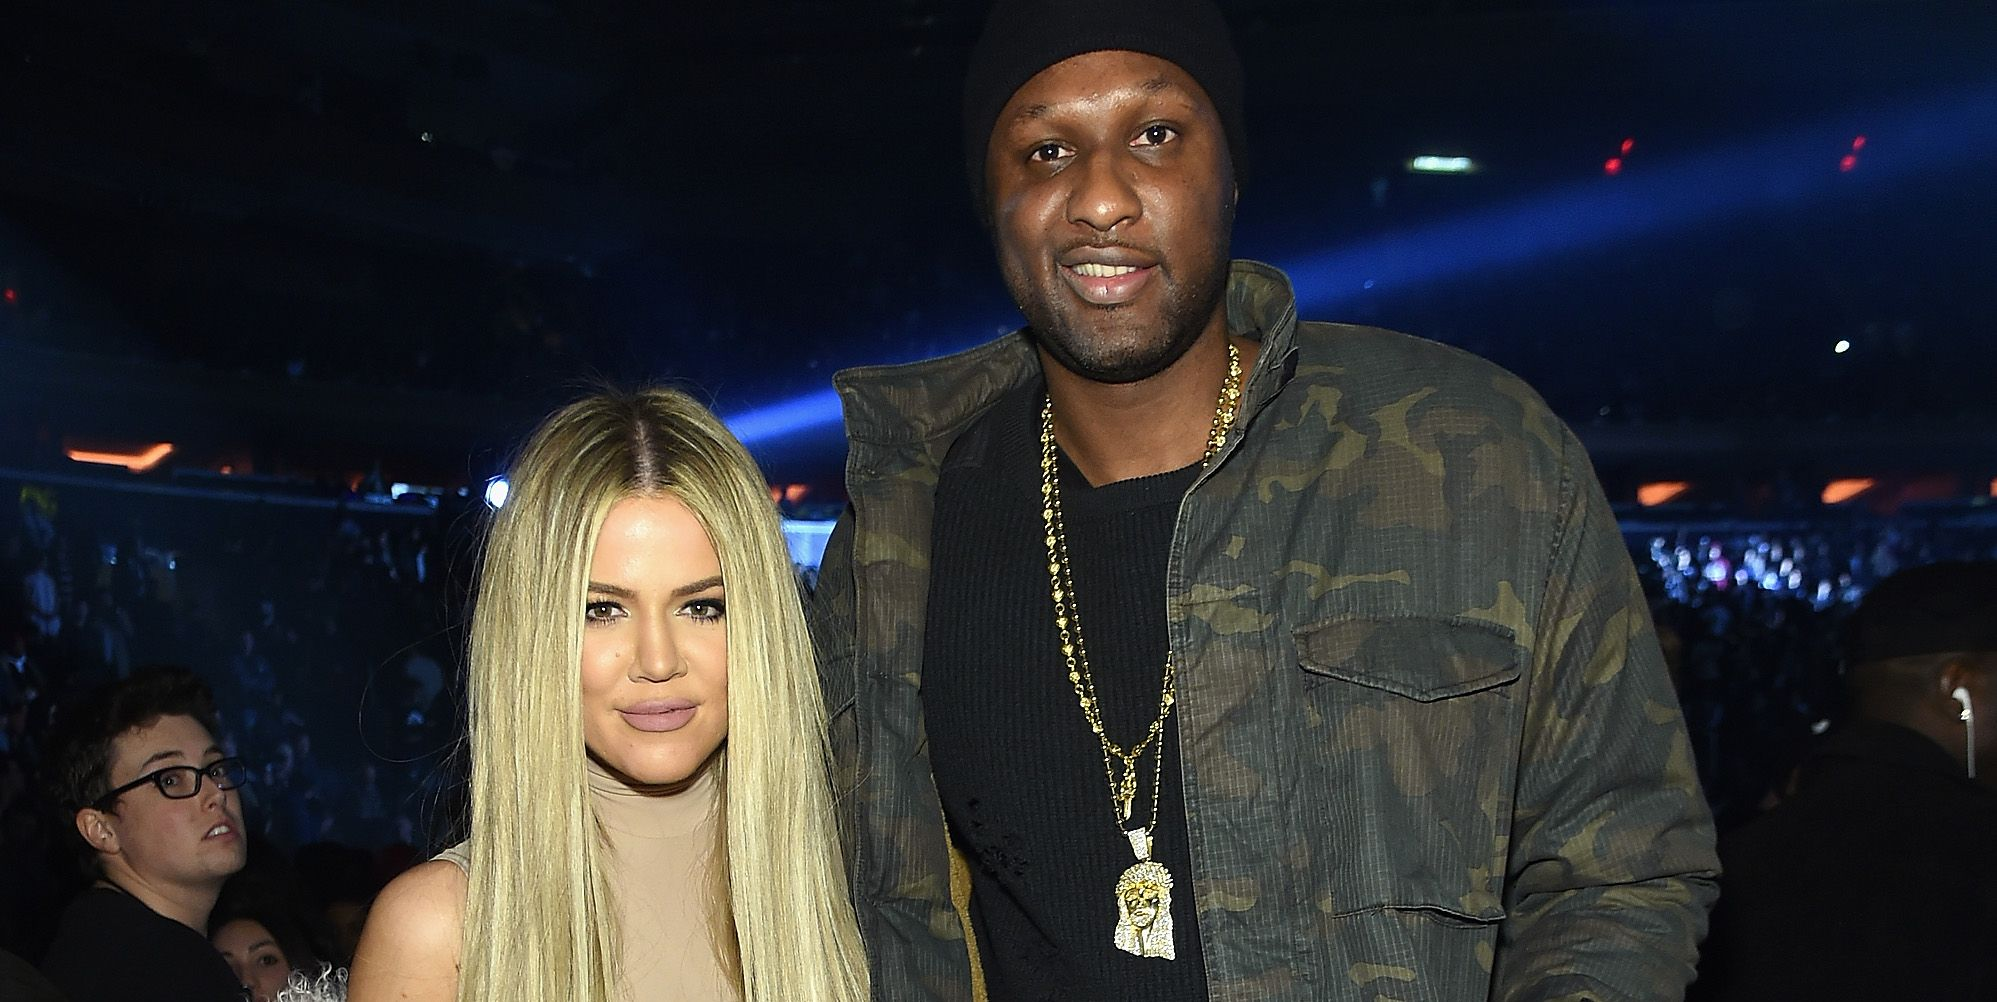 Lamar Odom Says He Regrets Cheating on Khloé Kardashian